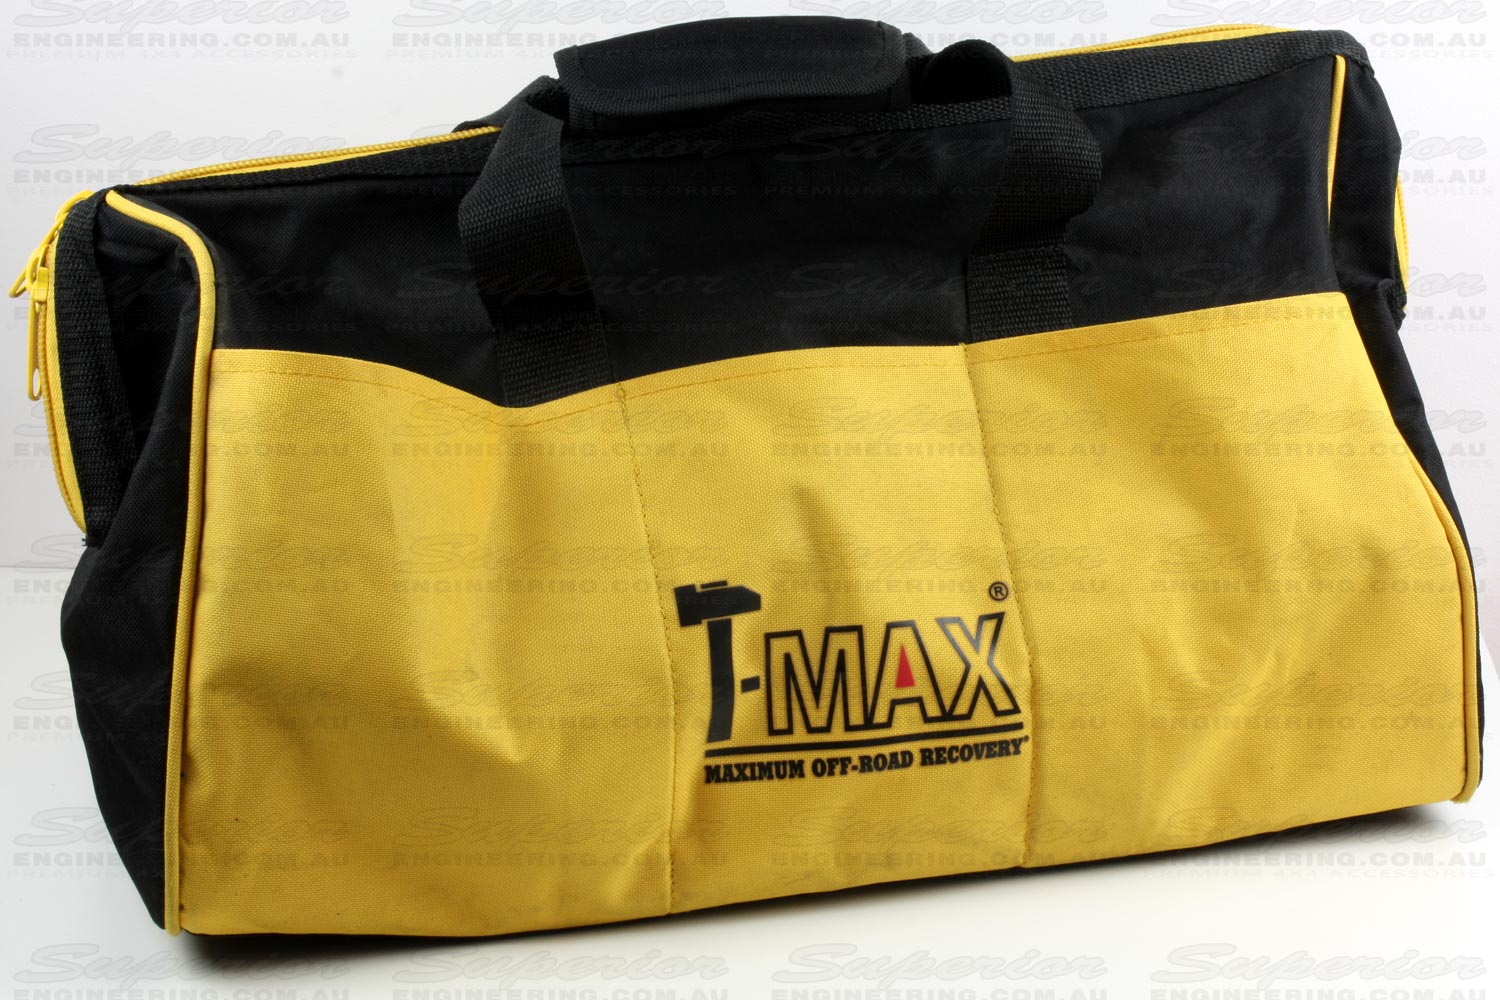 T-Max Heavy Duty Recovery Bag